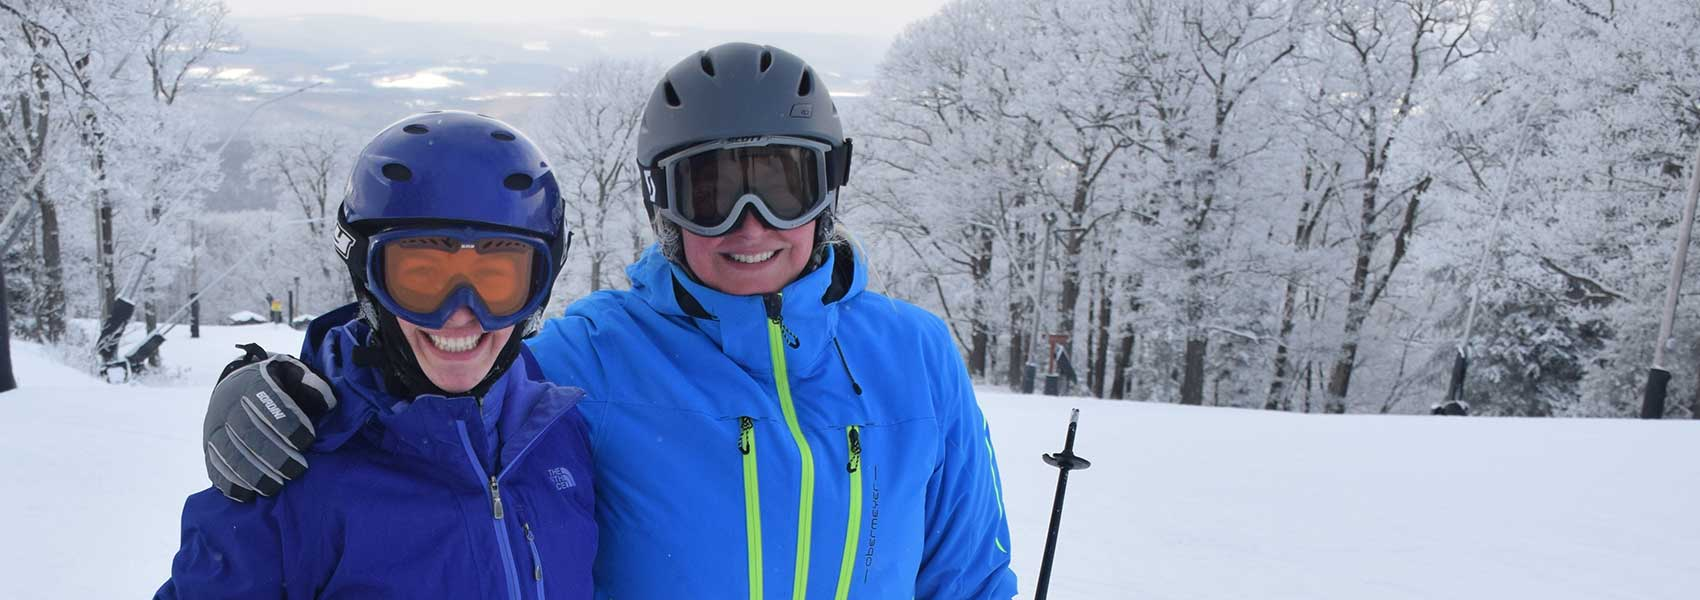 Adult skiers at Laurel Mountain